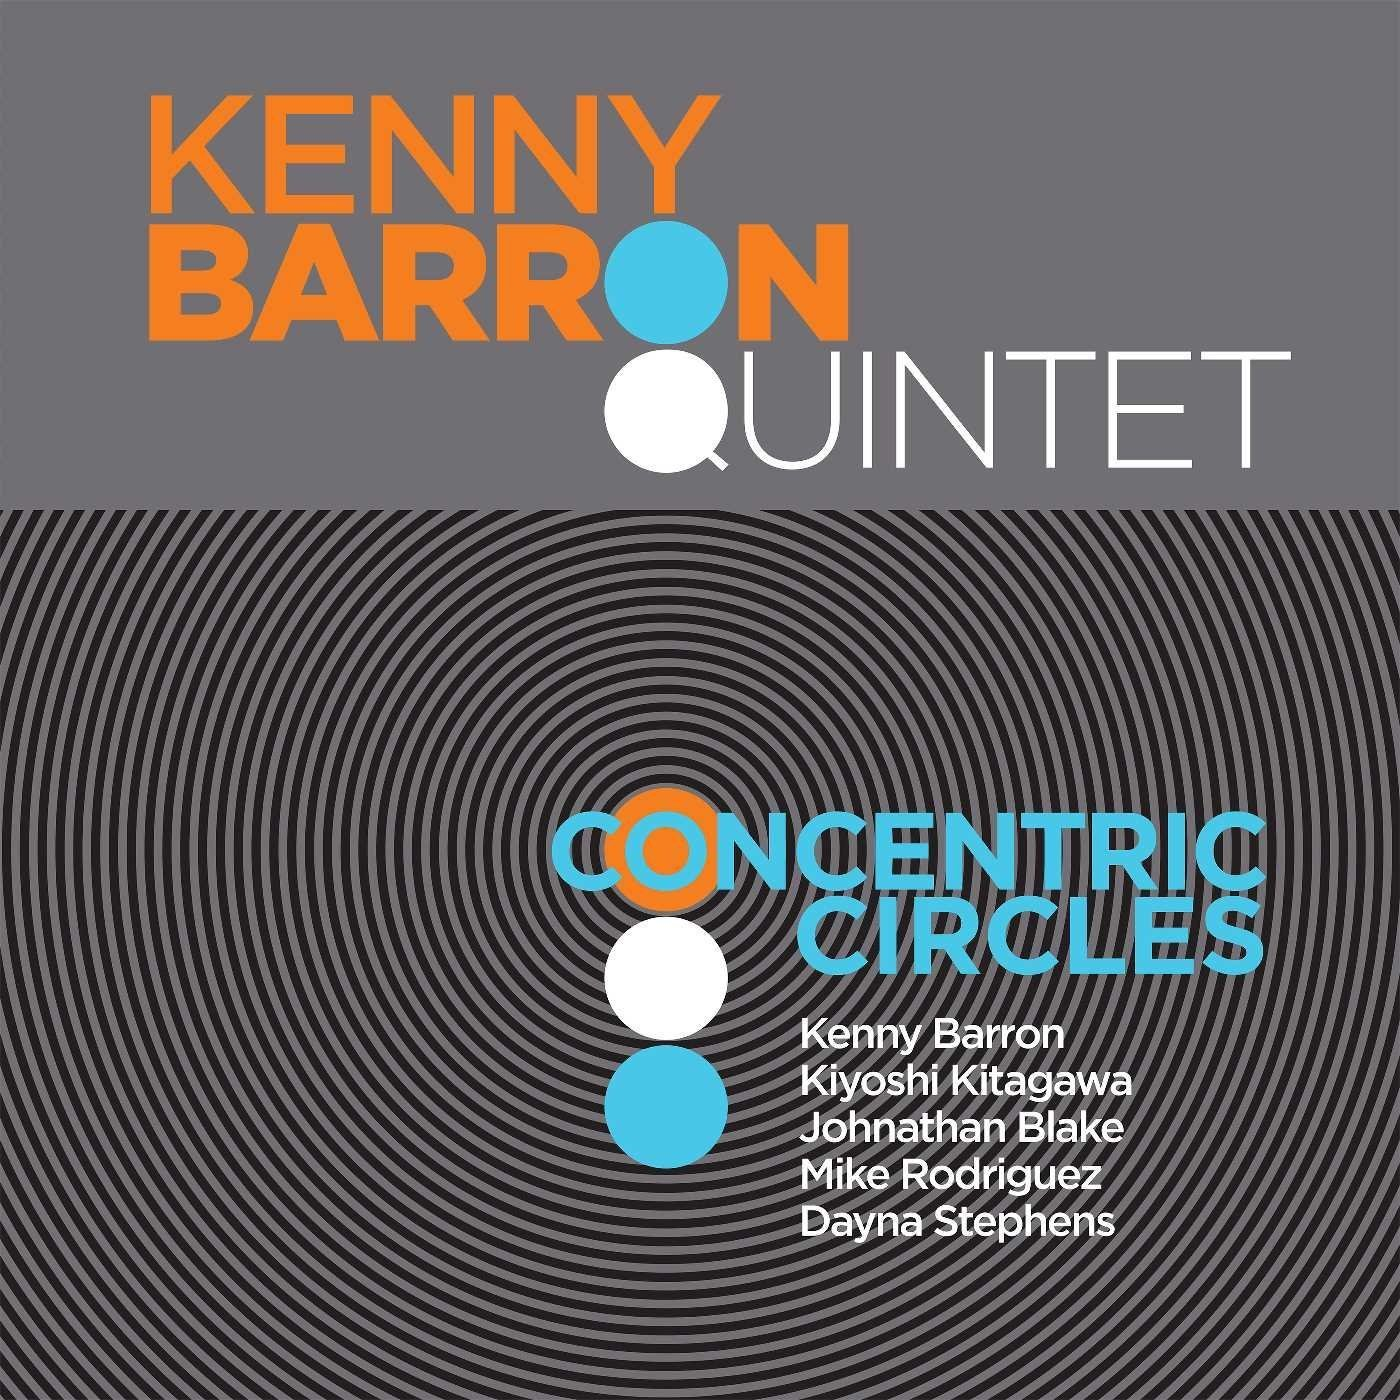 Concentric circles Kenny Barron Quintet, ensemble instrumental Kenny Barron, piano